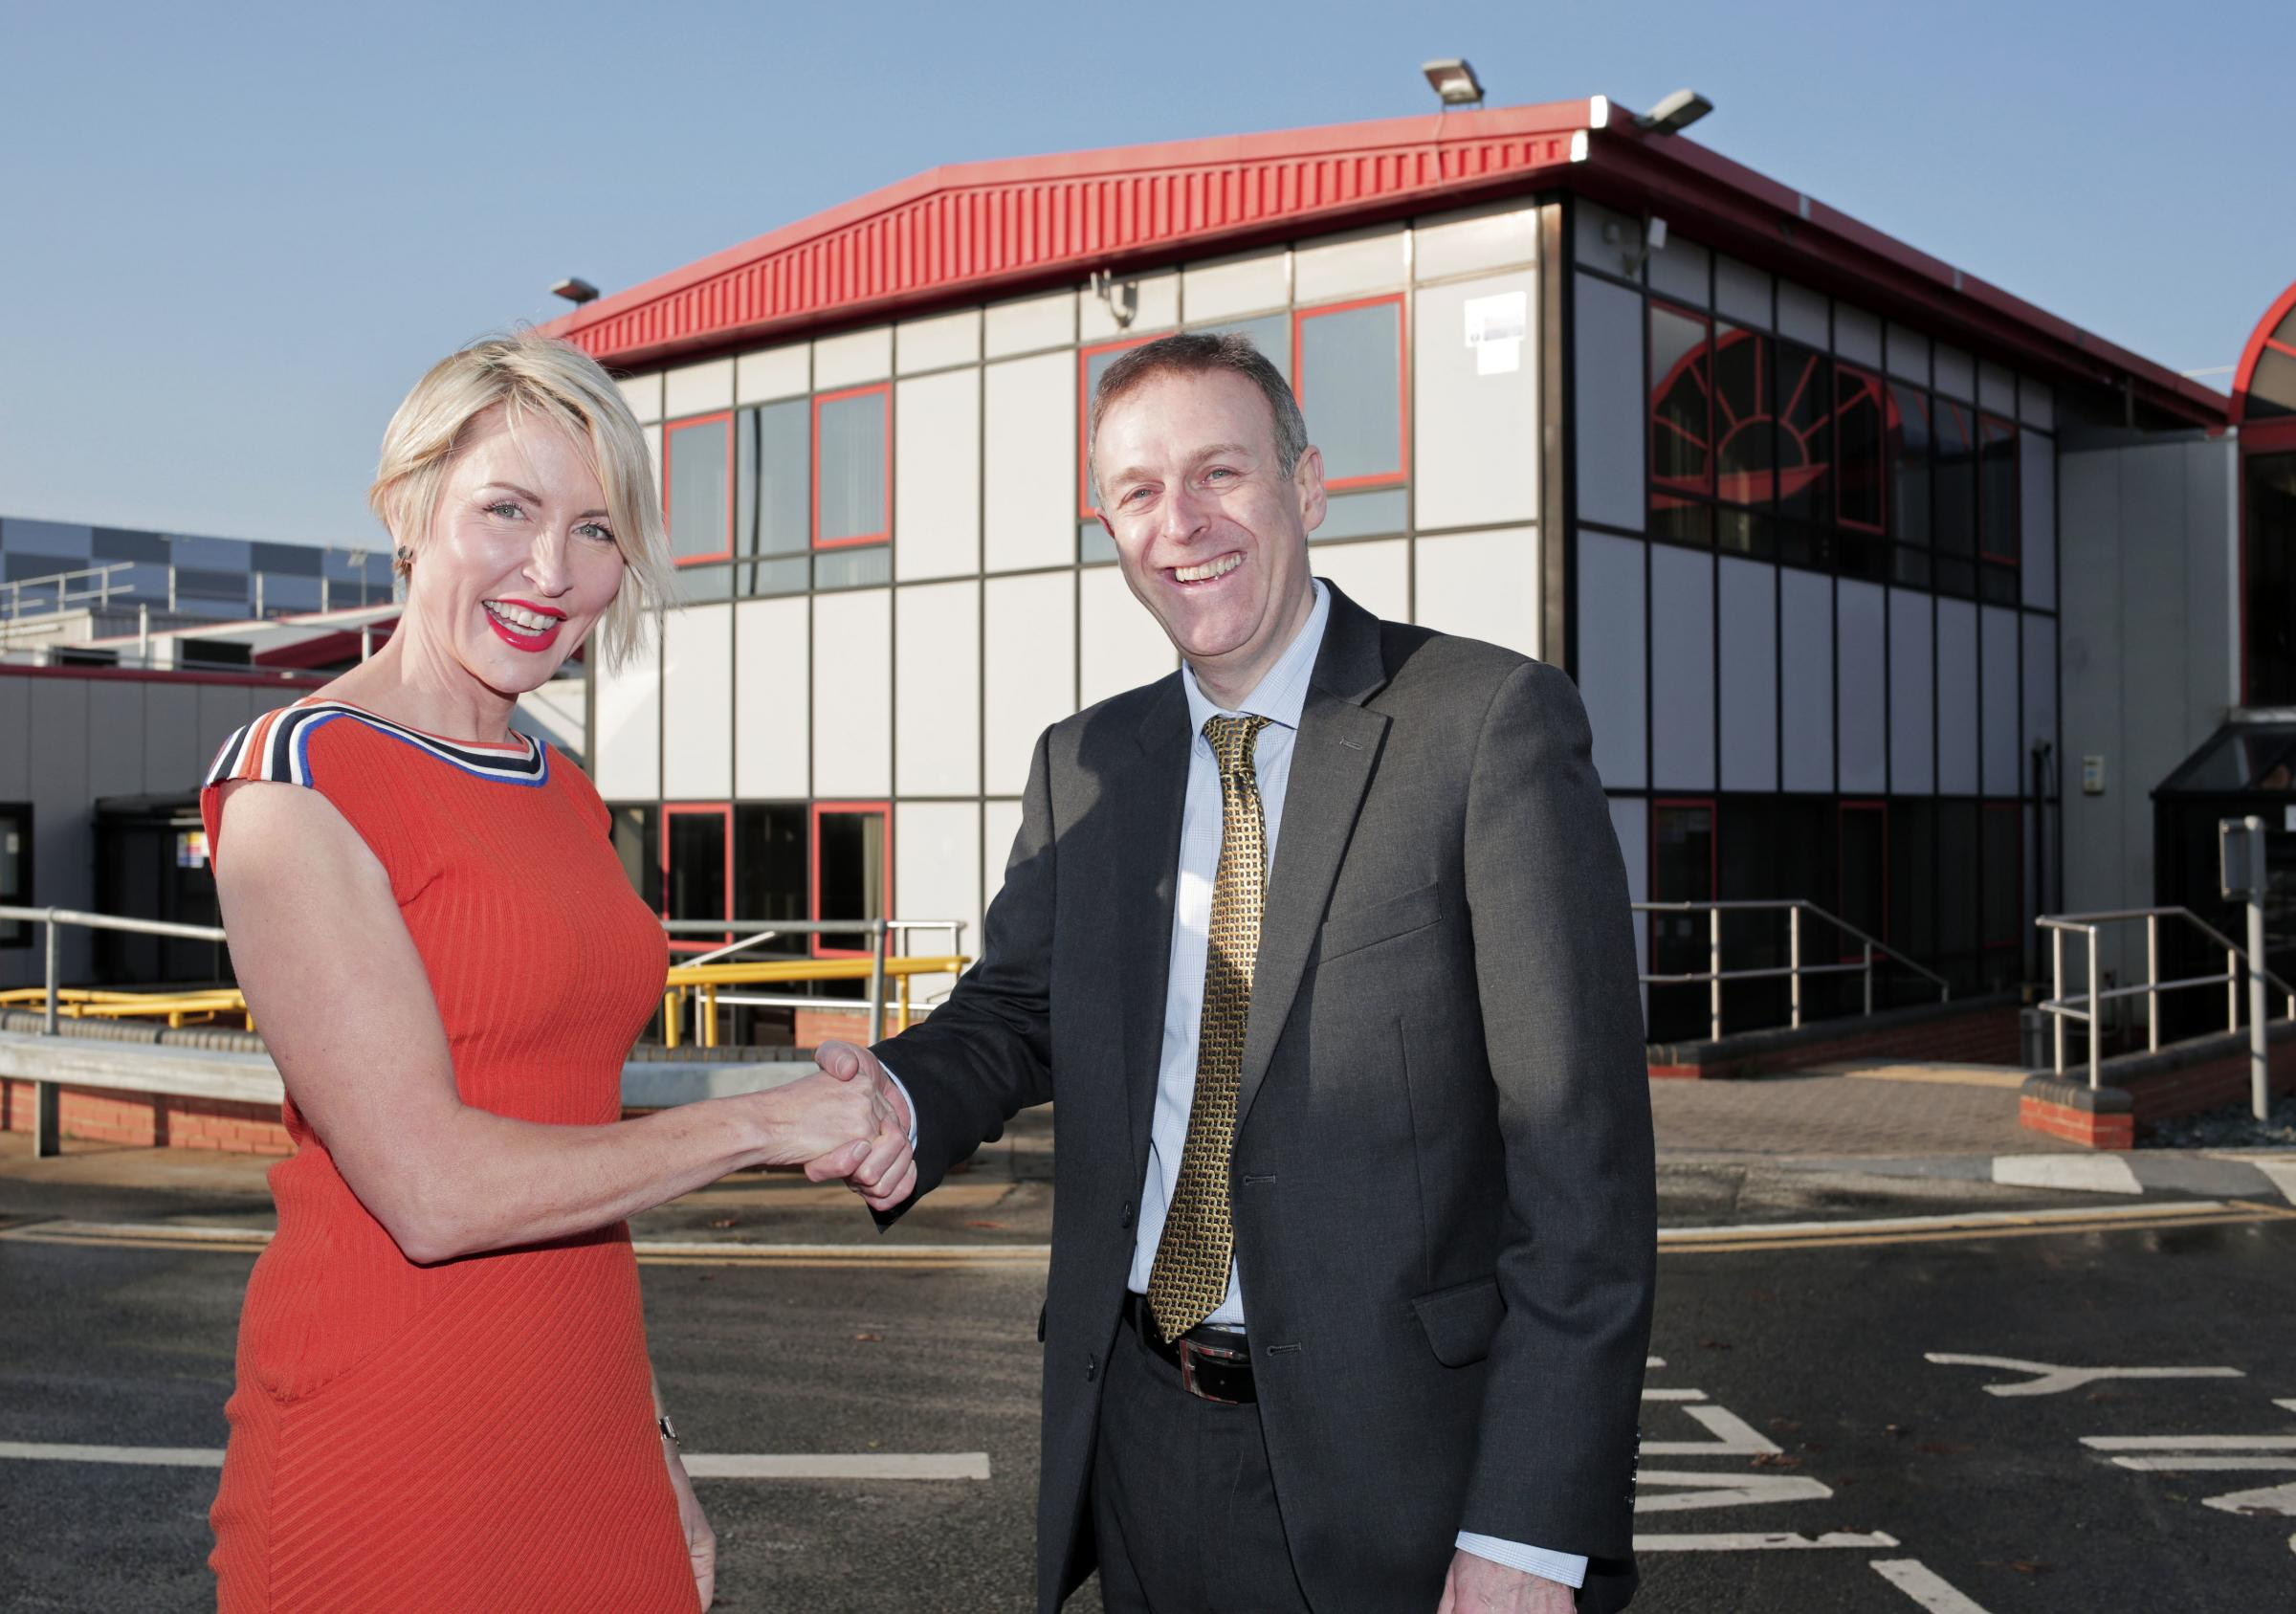 OPENING SOON: Heather Mills and Business Durham's Peter Rippingale at the former Walkers Crisps factory in Peterlee Picture: STUART BOULTON